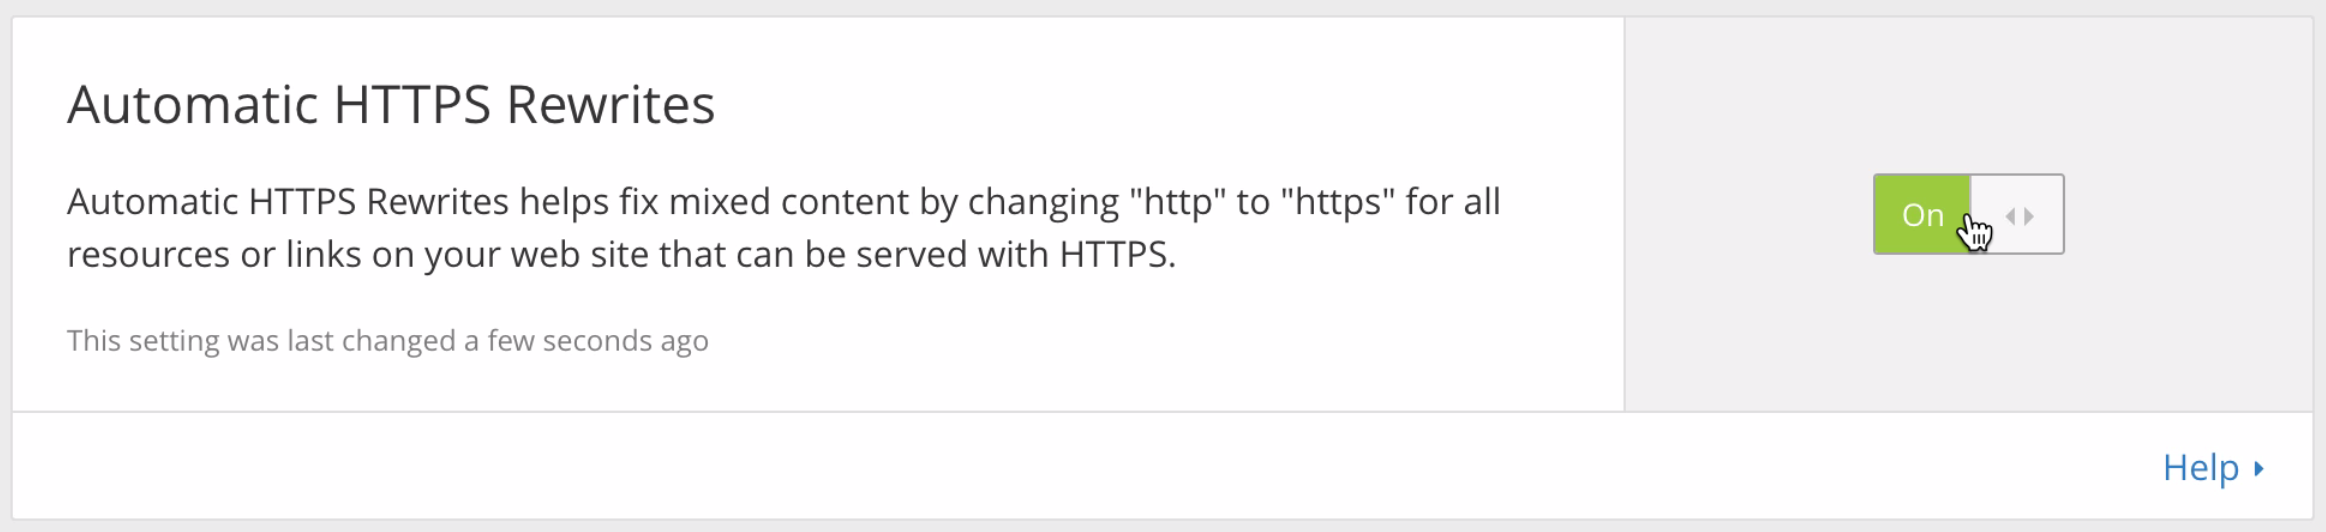 Automatic HTTPS rewrite